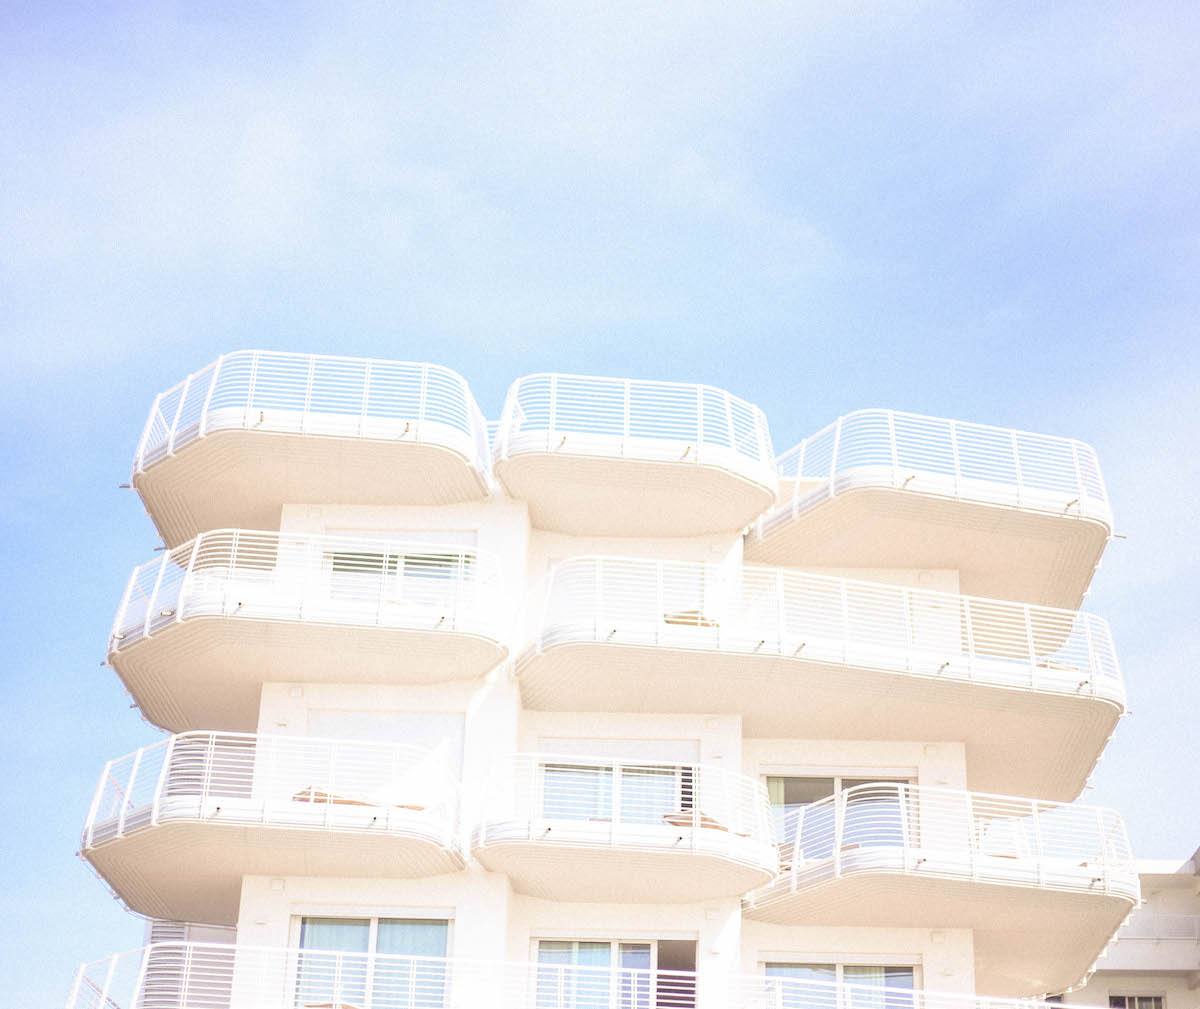 jesolo beach travel italy architecture hotel 70s veneto